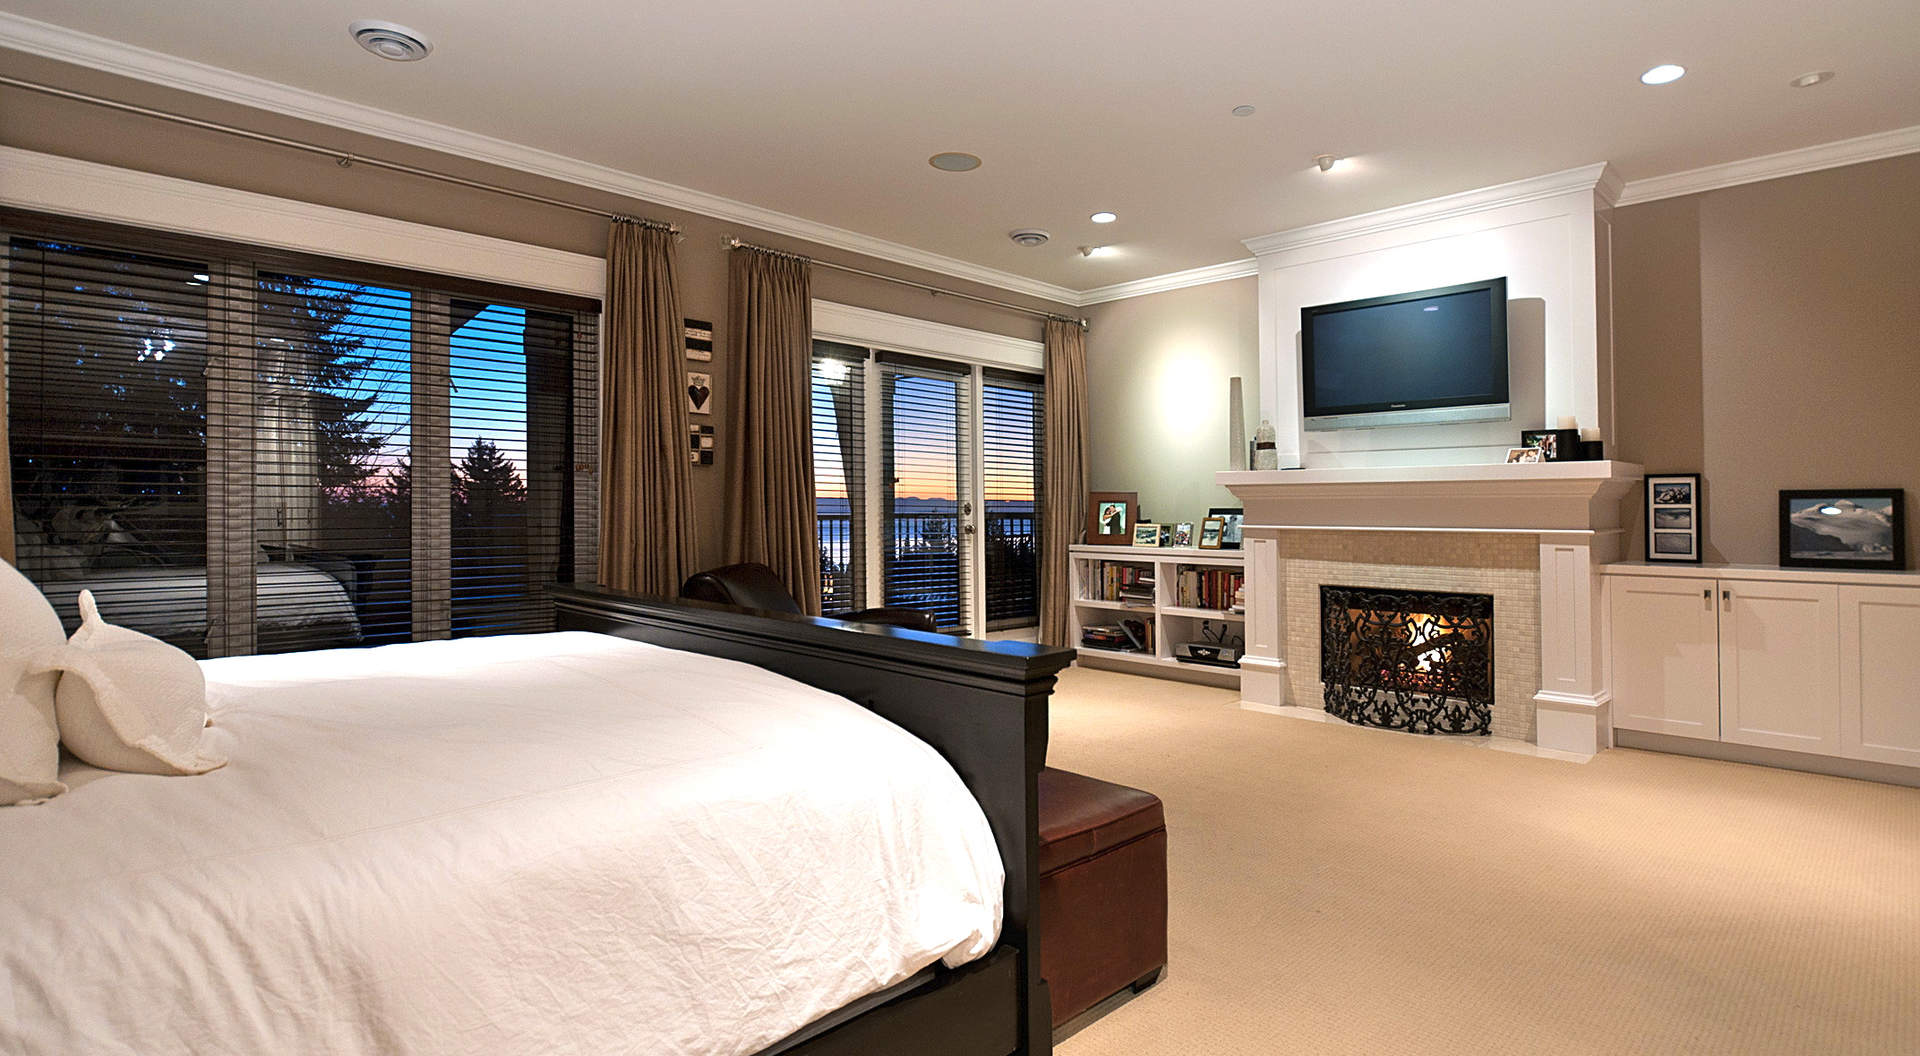 Master Bedroom with Built-in Media Center & Fireplace